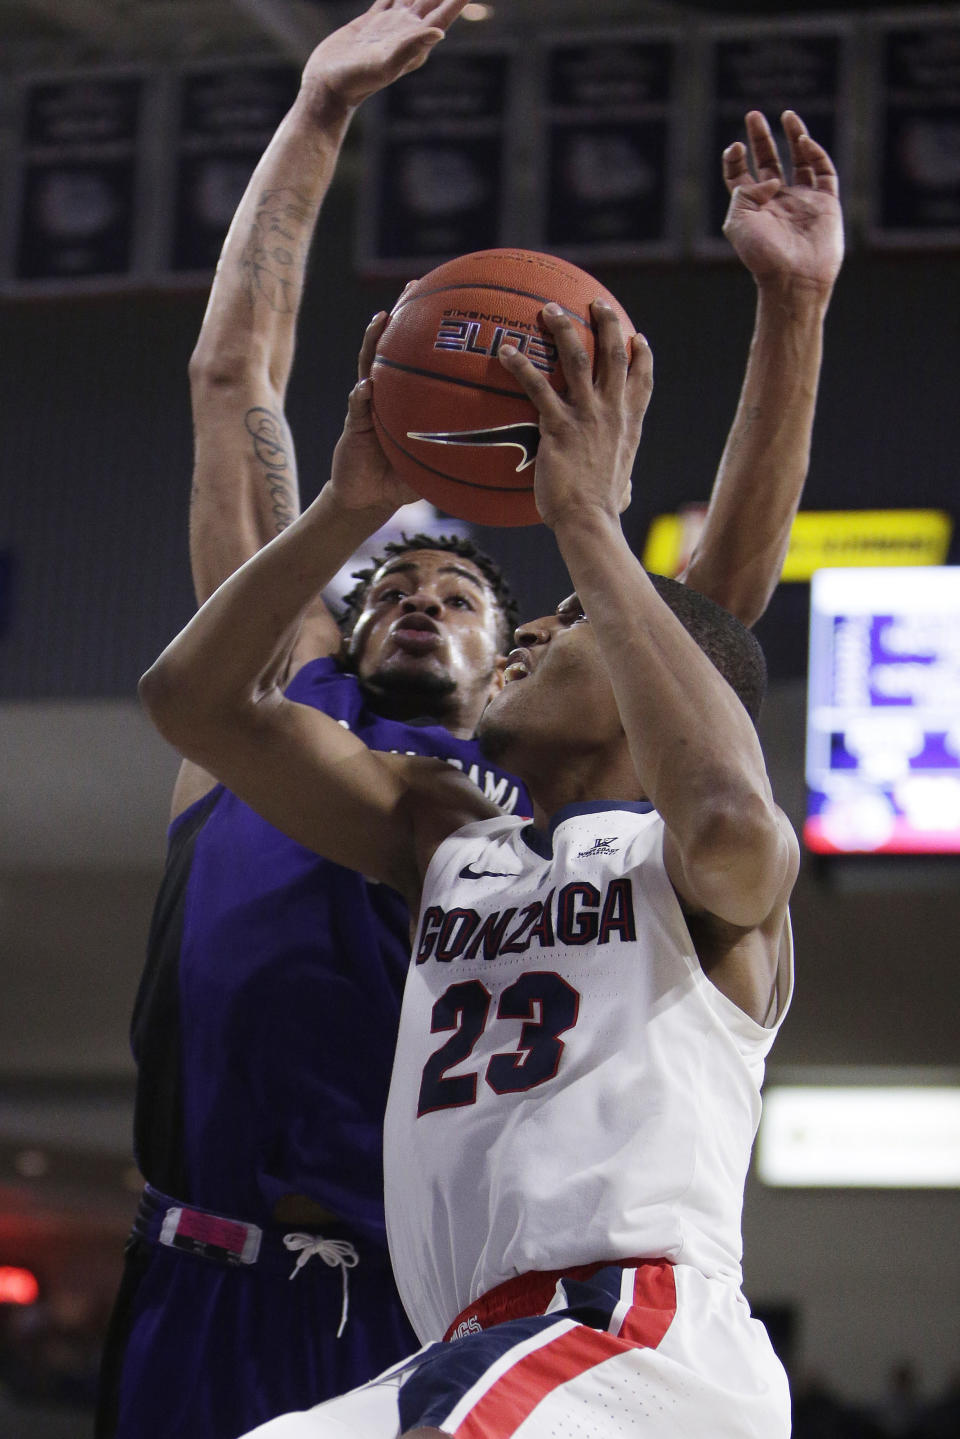 Gonzaga guard Zach Norvell Jr. (23) shoots while defended by North Alabama forward Emanuel Littles during the second half of an NCAA college basketball game in Spokane, Wash., Friday, Dec. 28, 2018. Gonzaga won 96-51. (AP Photo/Young Kwak)